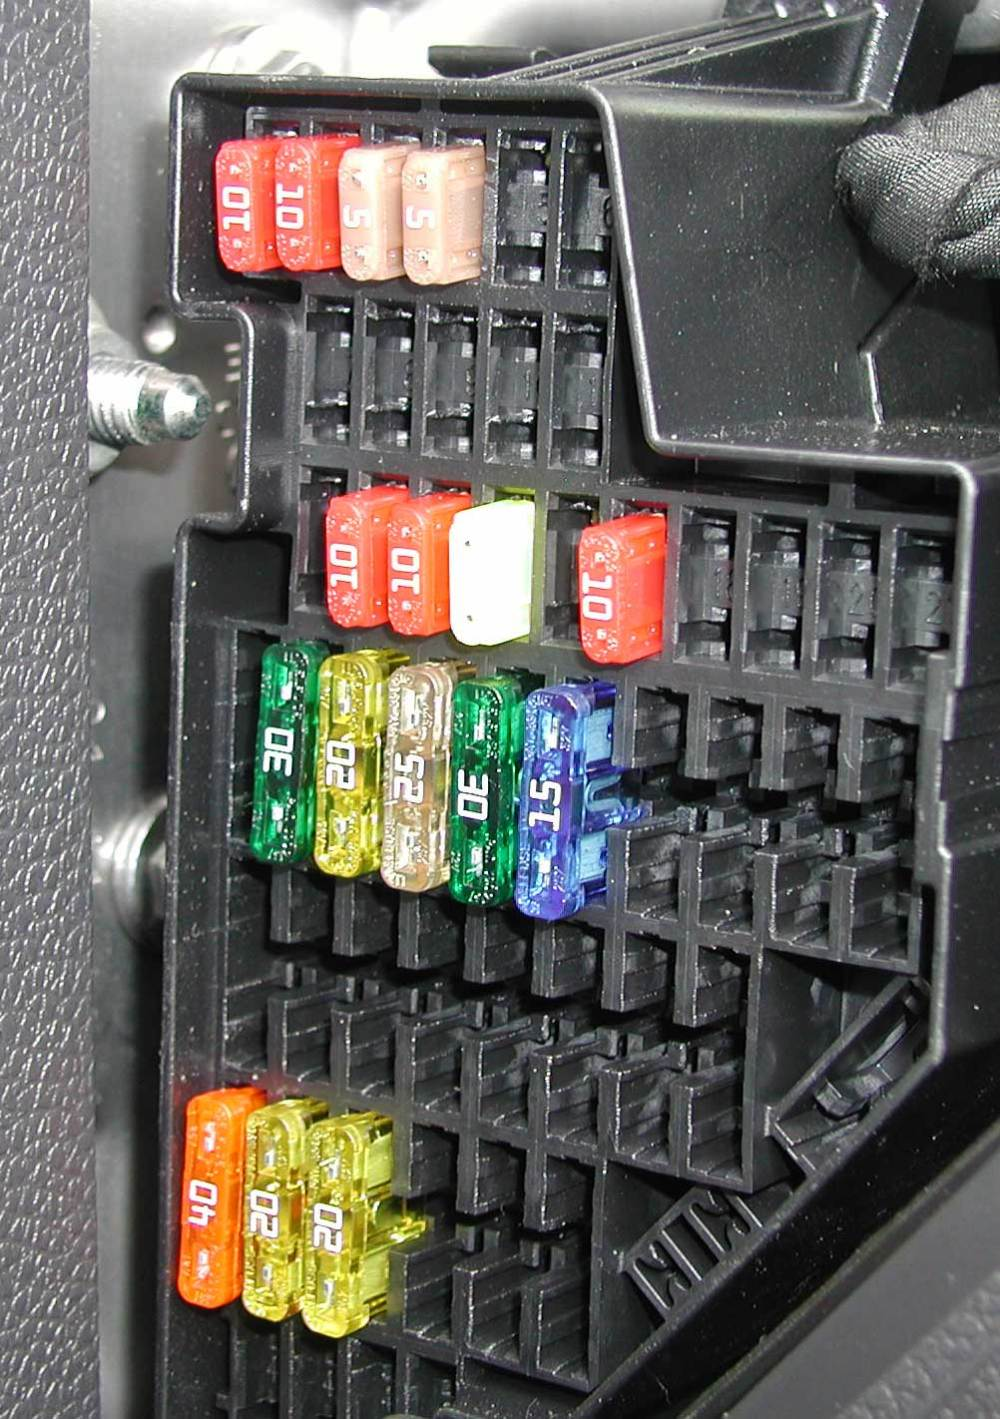 medium resolution of 2011 golf tdi fuse box picture please tdiclub forums ford fusion fuse box 2011 volkswagen golf fuse box